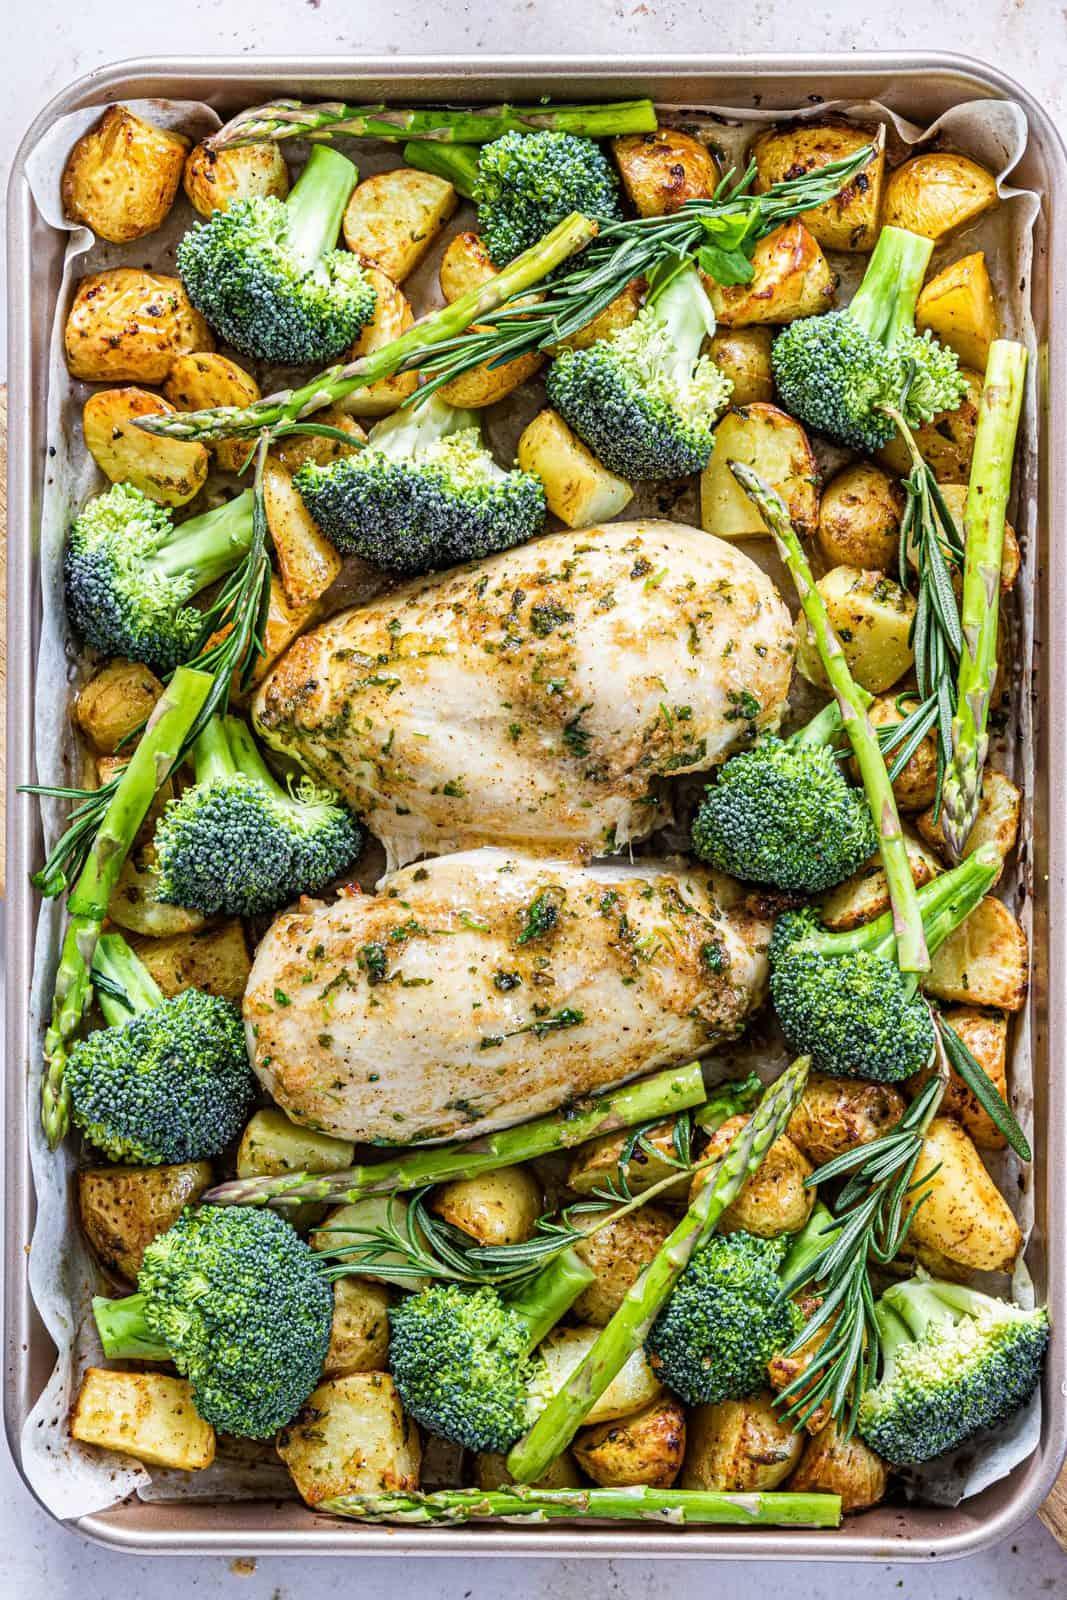 Asparagus, broccoli and rosemary added to pan with chicken and potatoes.